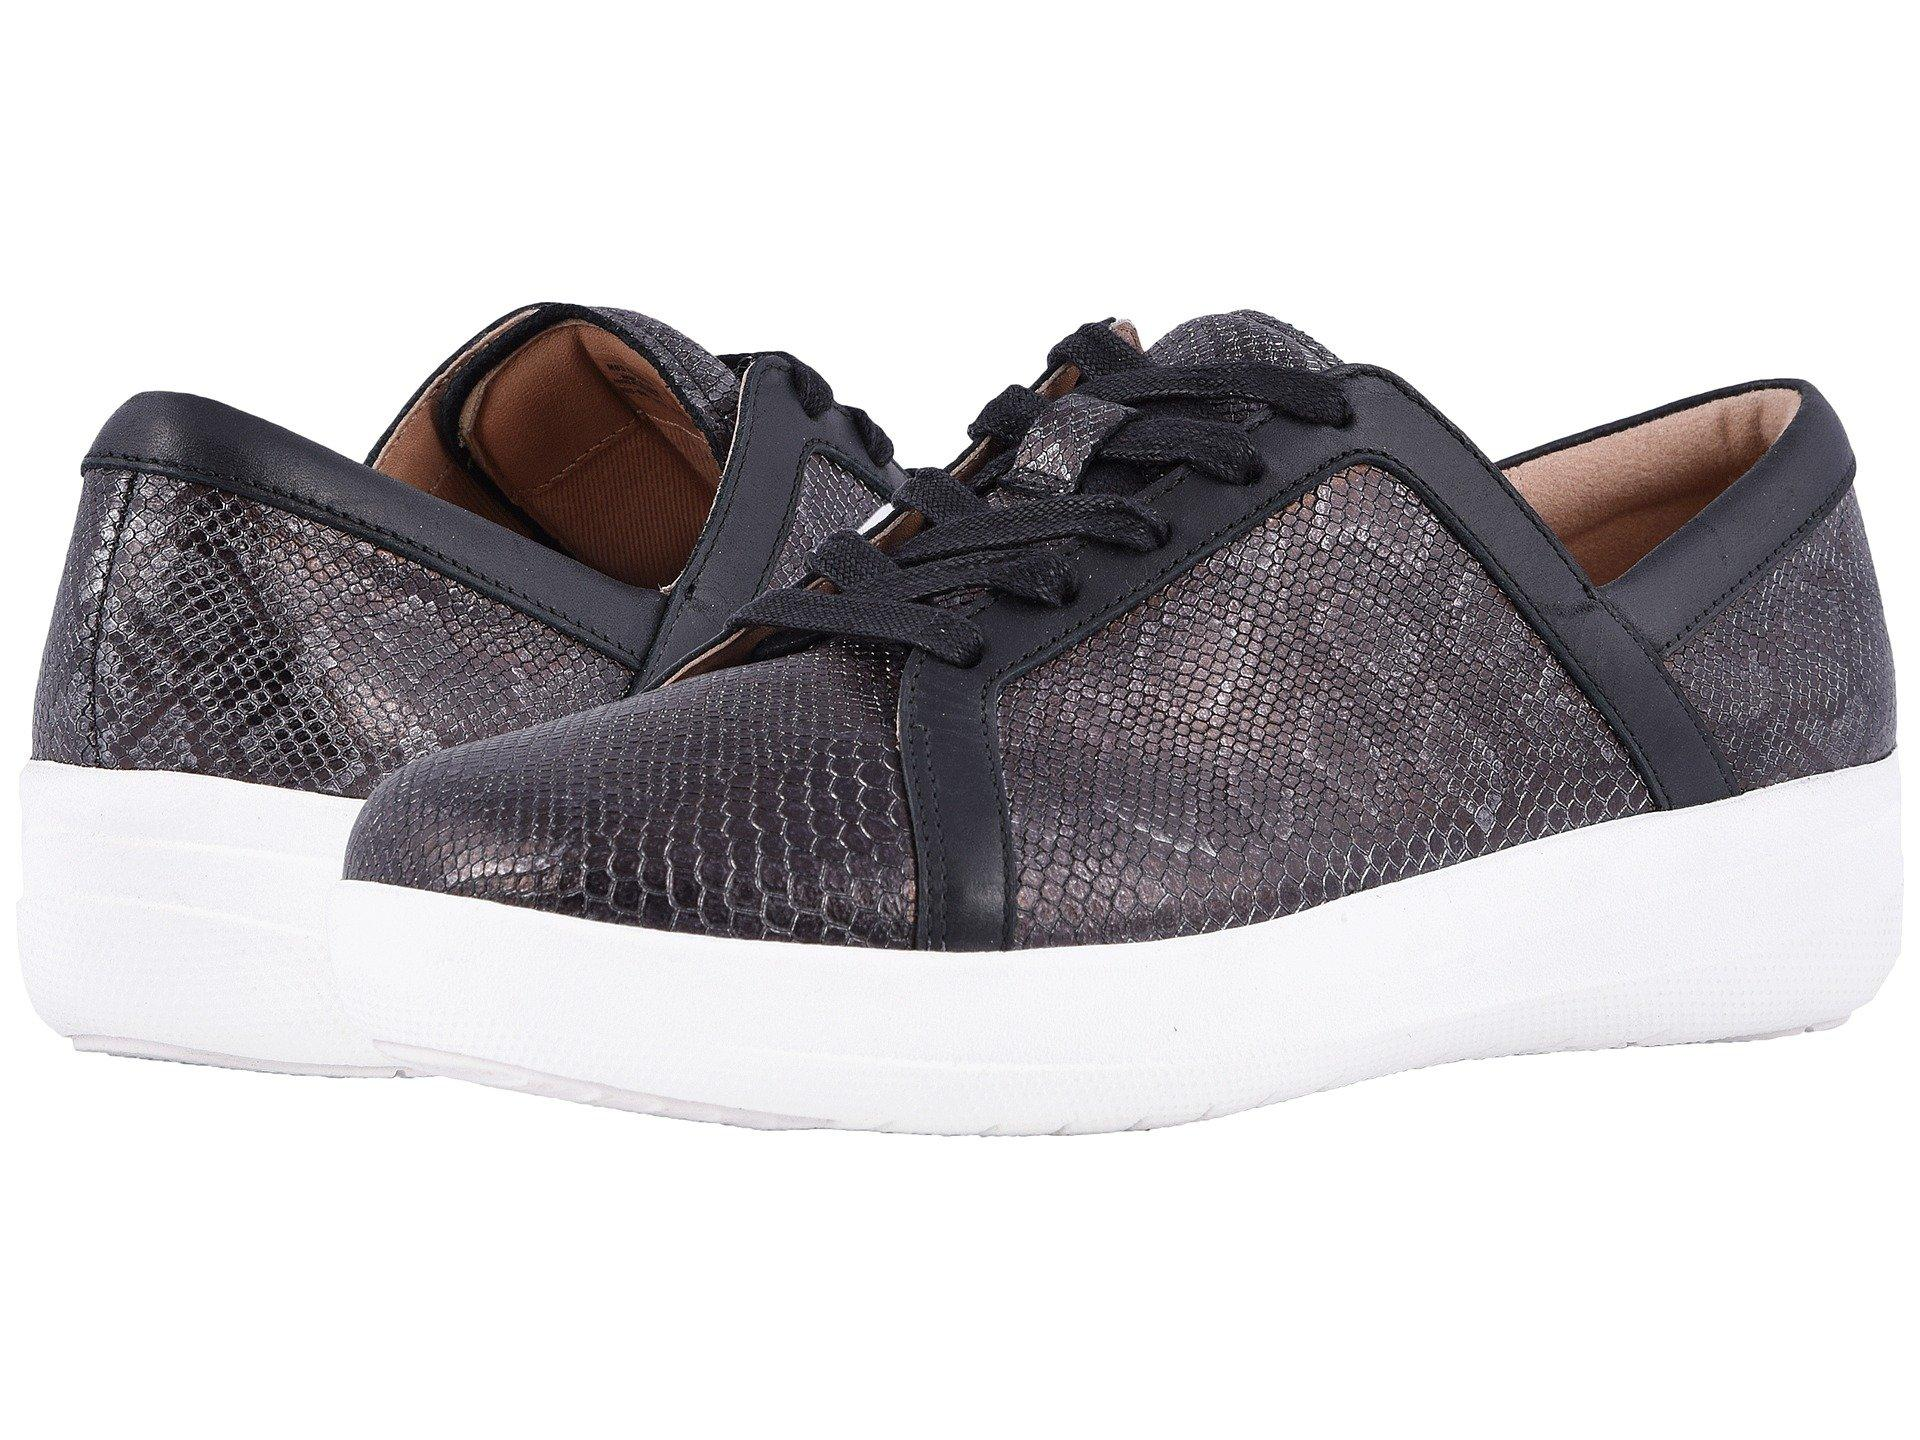 d98f2a217353 Lyst - Fitflop F-sporty Ii Python Print in Black - Save 14%